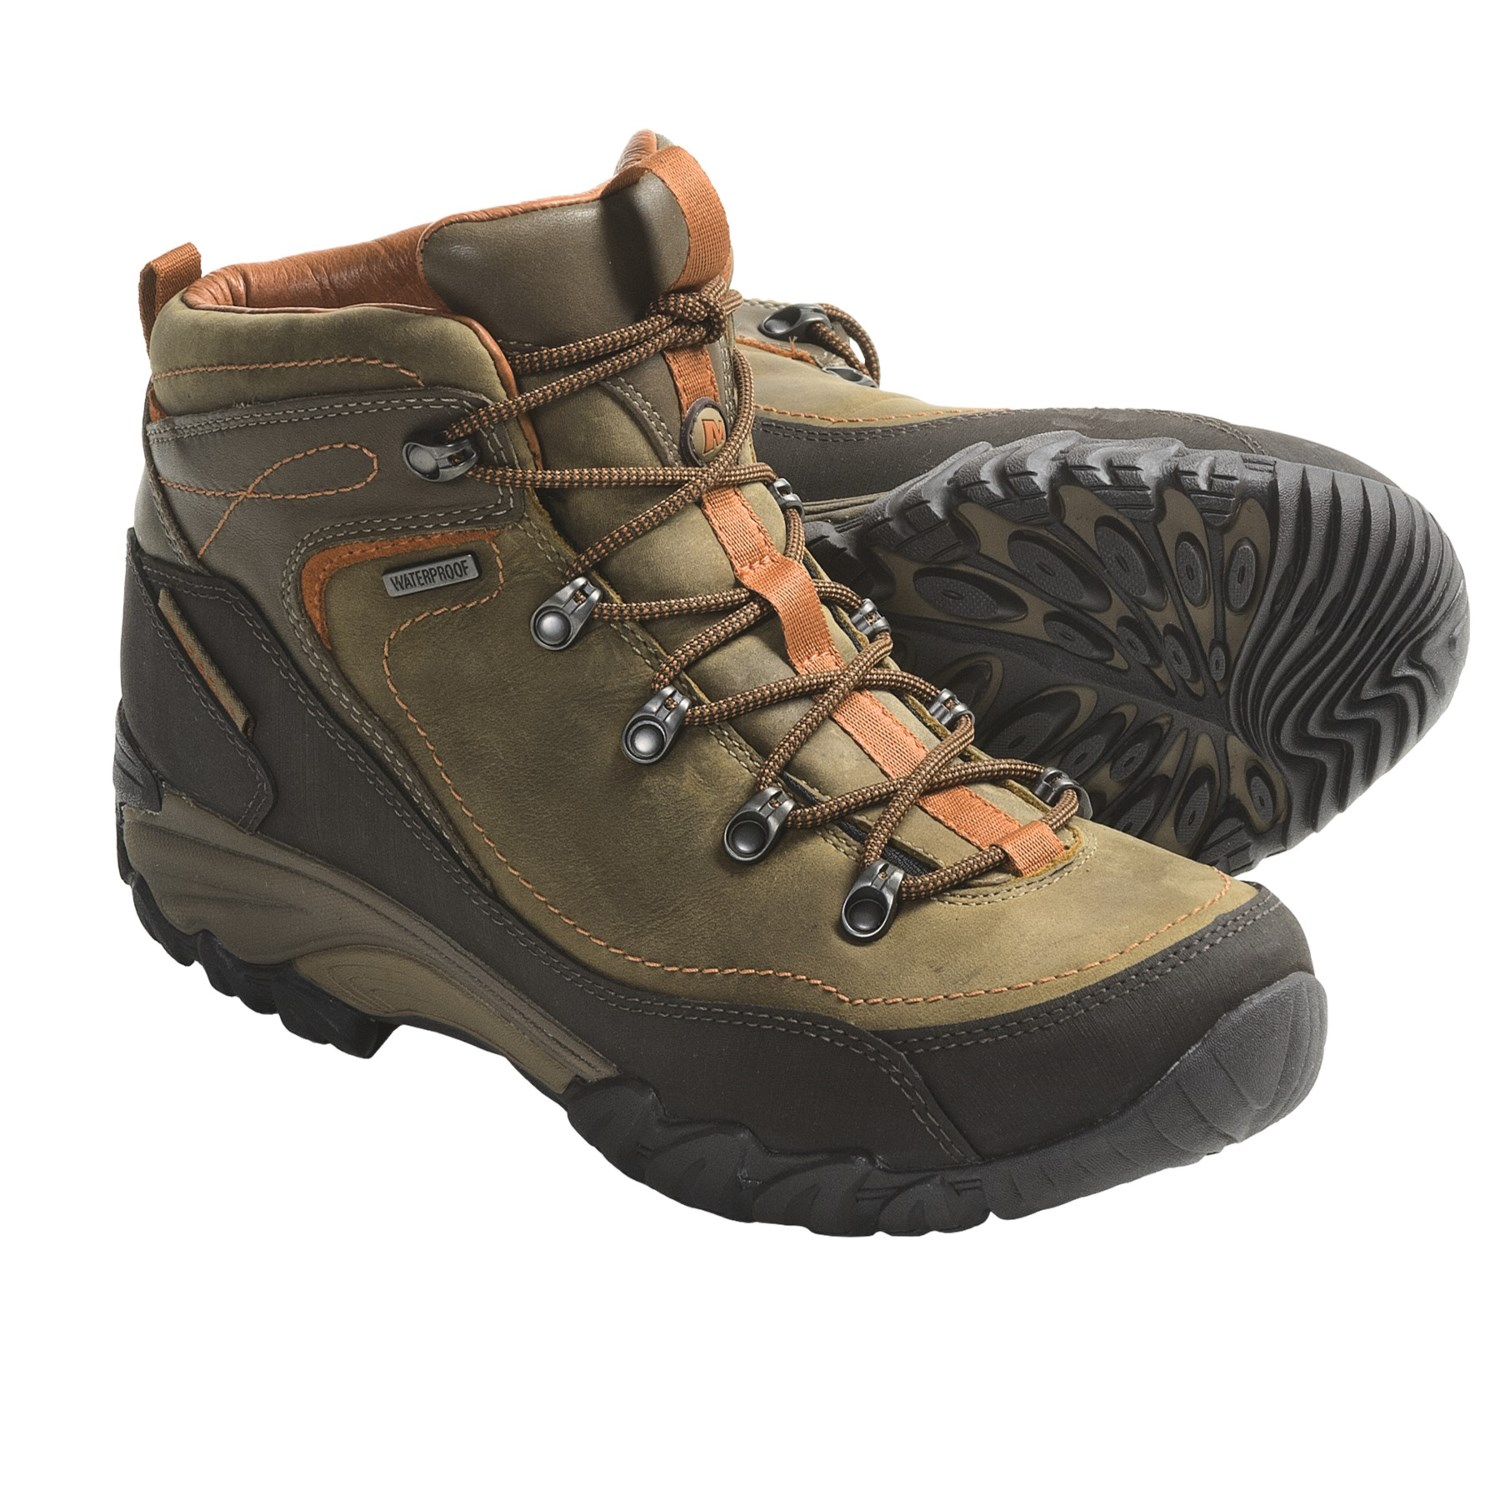 Merrell Chameleon Arc 2 Rival Hiking Boots - Waterproof (For Women